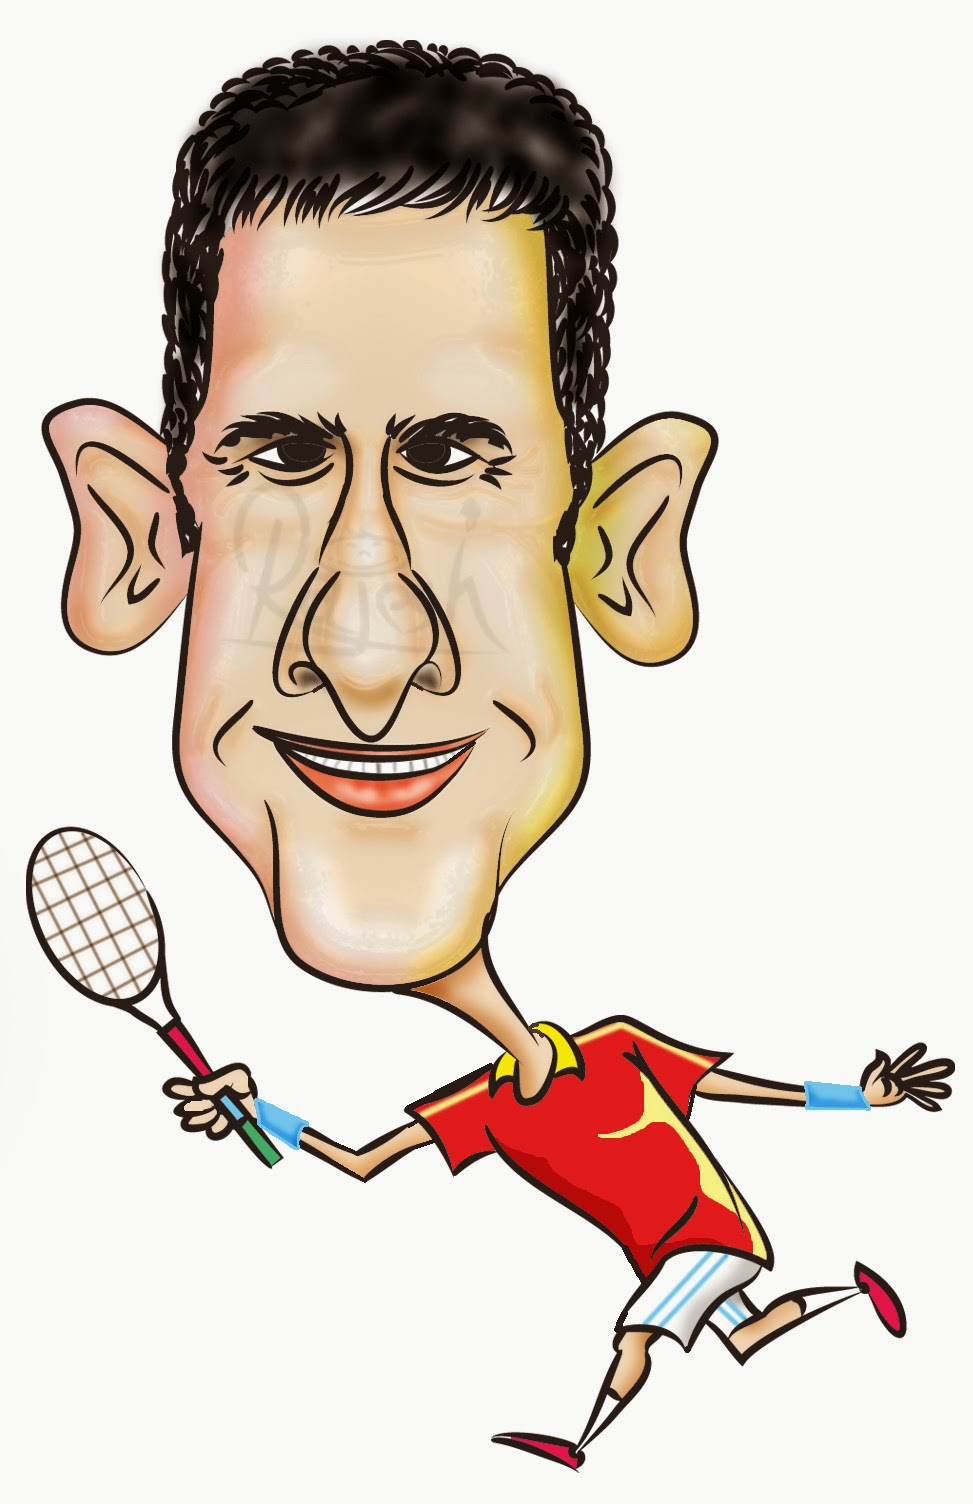 Novak Djokovic cartoon-Novak Djokovic cartoon-13